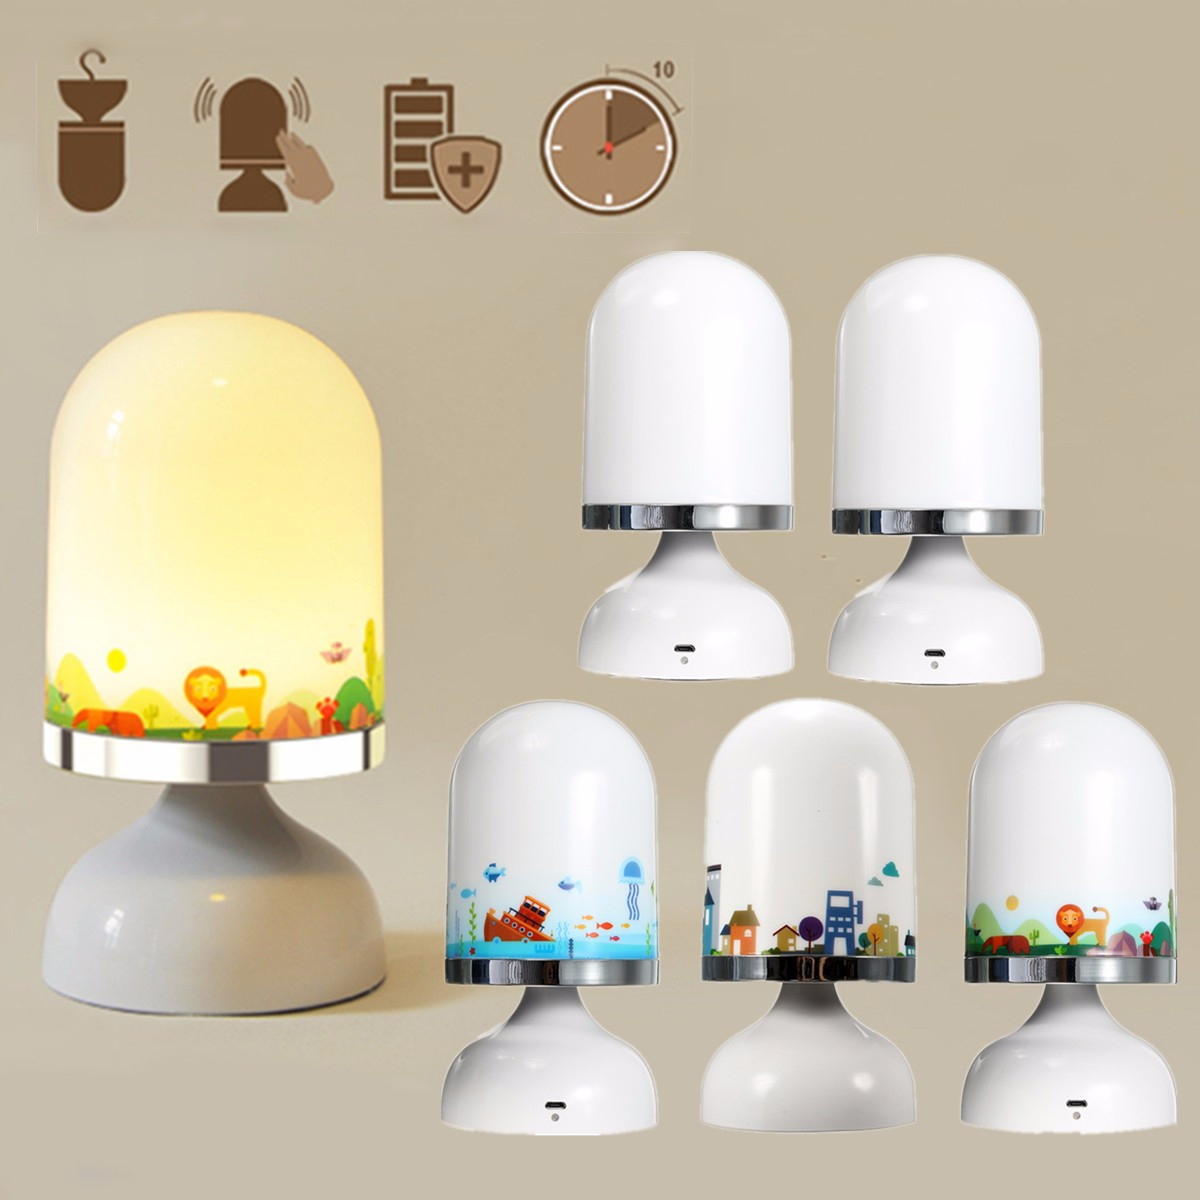 Portable Usb Rechargeable Led Night Light Hanging Stand